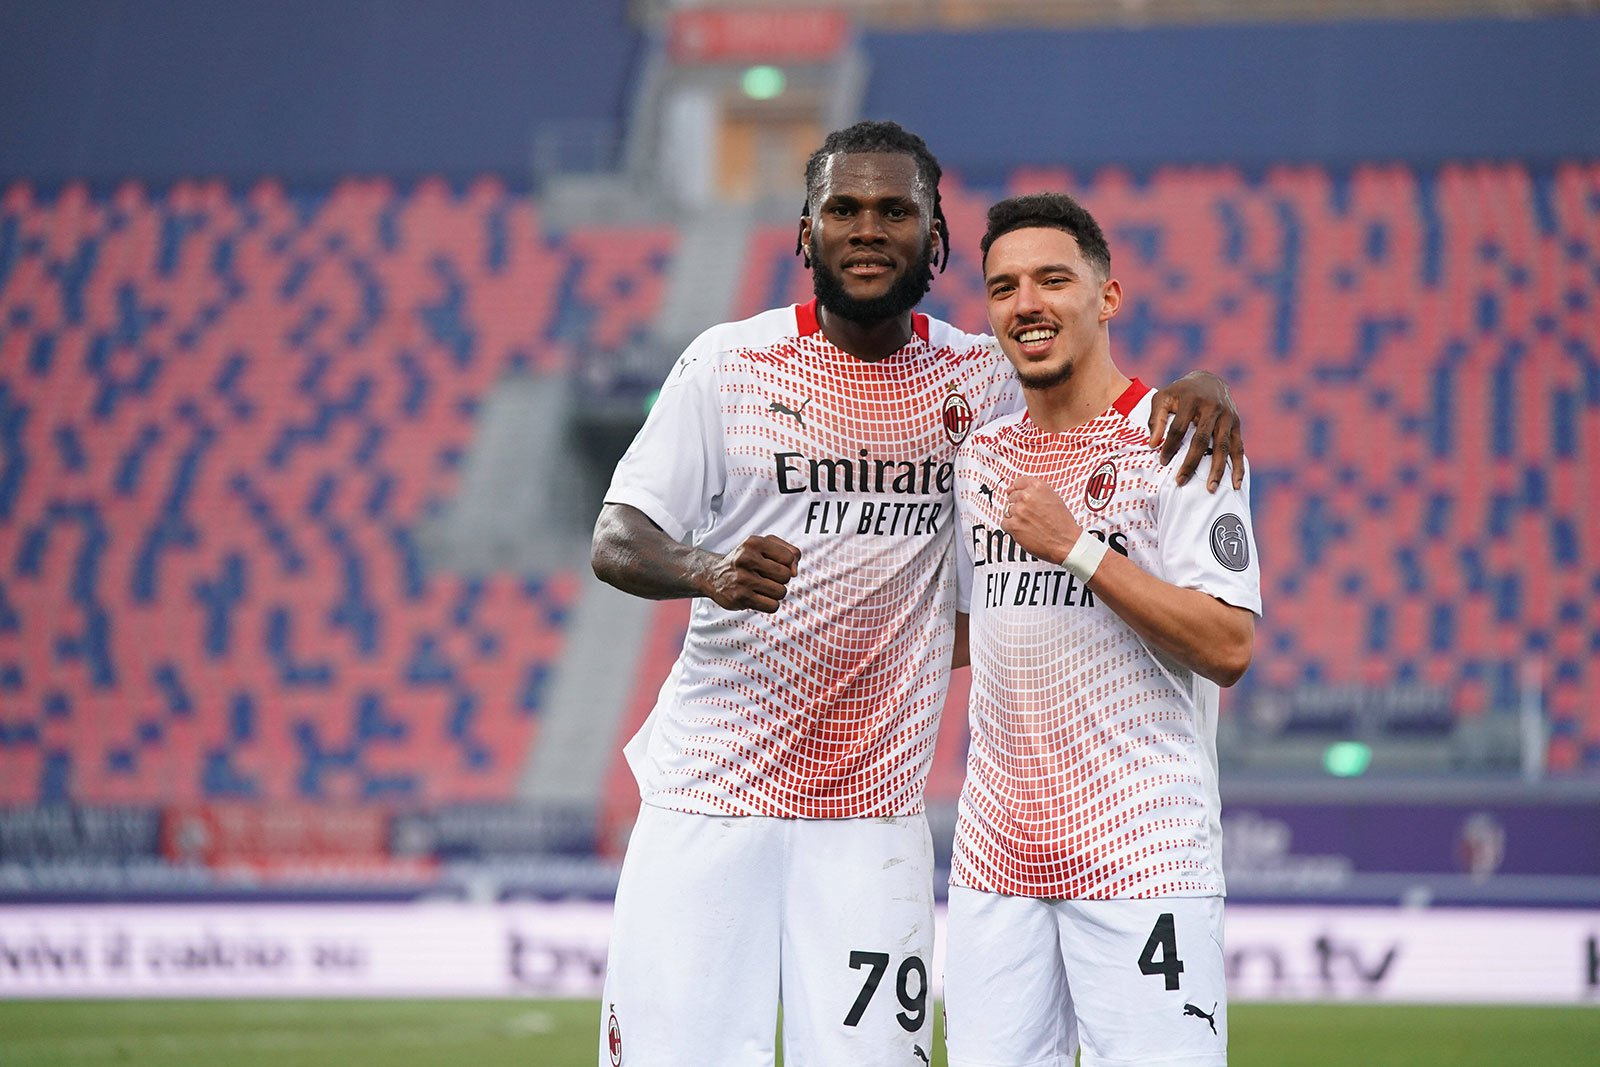 """Kessié: """"The win was crucial, we fought until the end, scoring in double digits is my objective, the return of Bennacer? I'm happy everyone is coming back now""""   Rossoneri Blog -"""